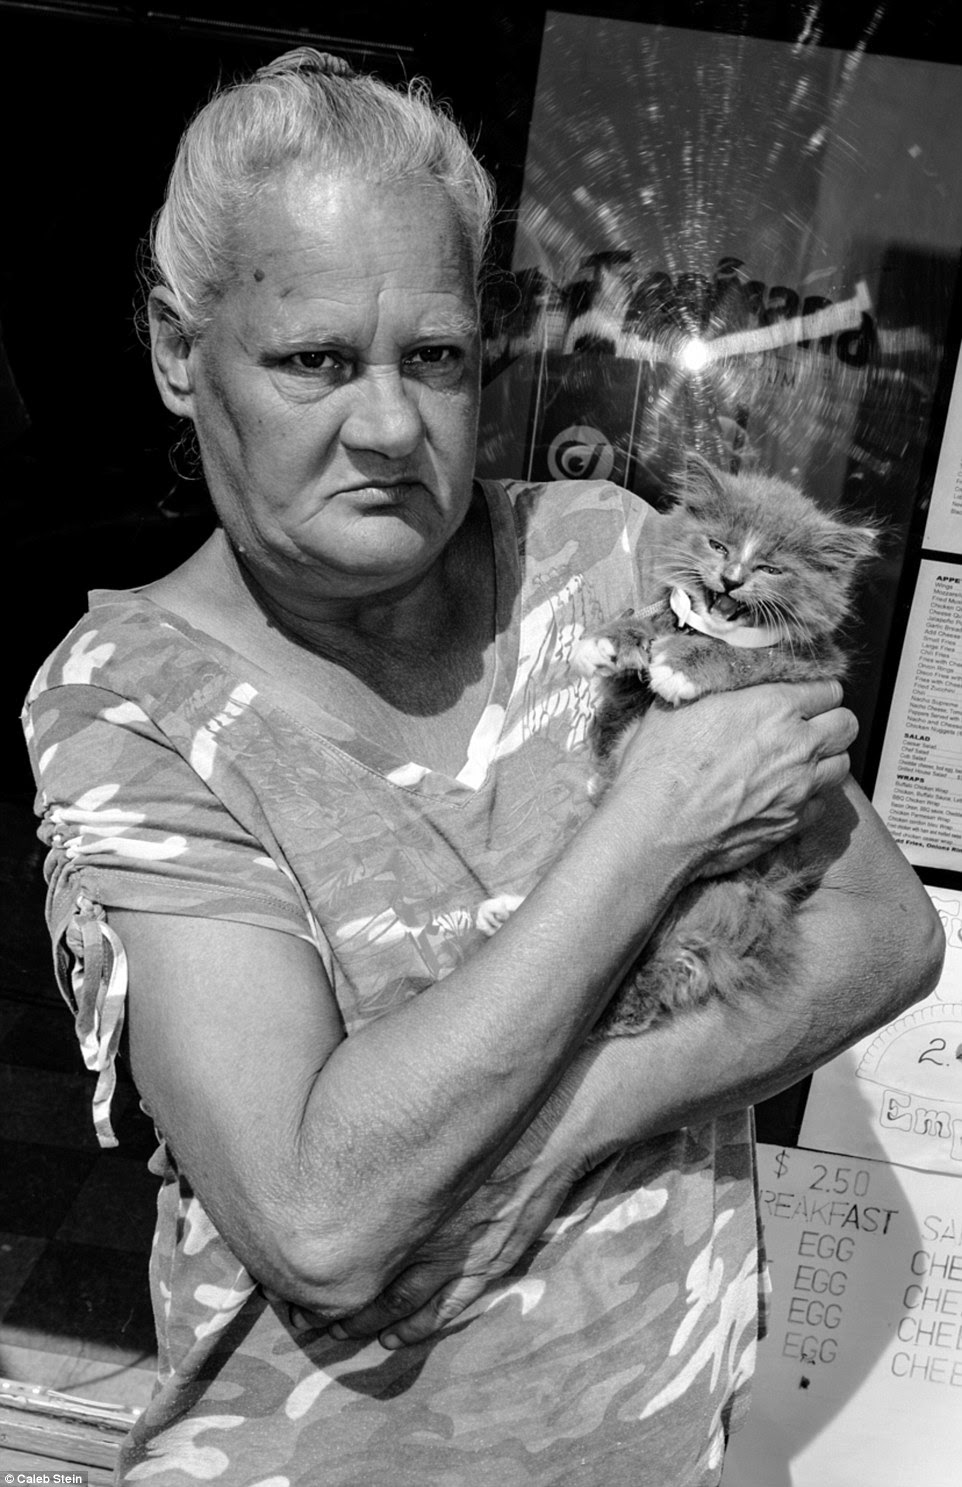 Photographer Caleb Stein captured the images as part of an ongoing project titled 'Down by the Hudson'. Pictured above is a woman named Karen with a cat on Main Street